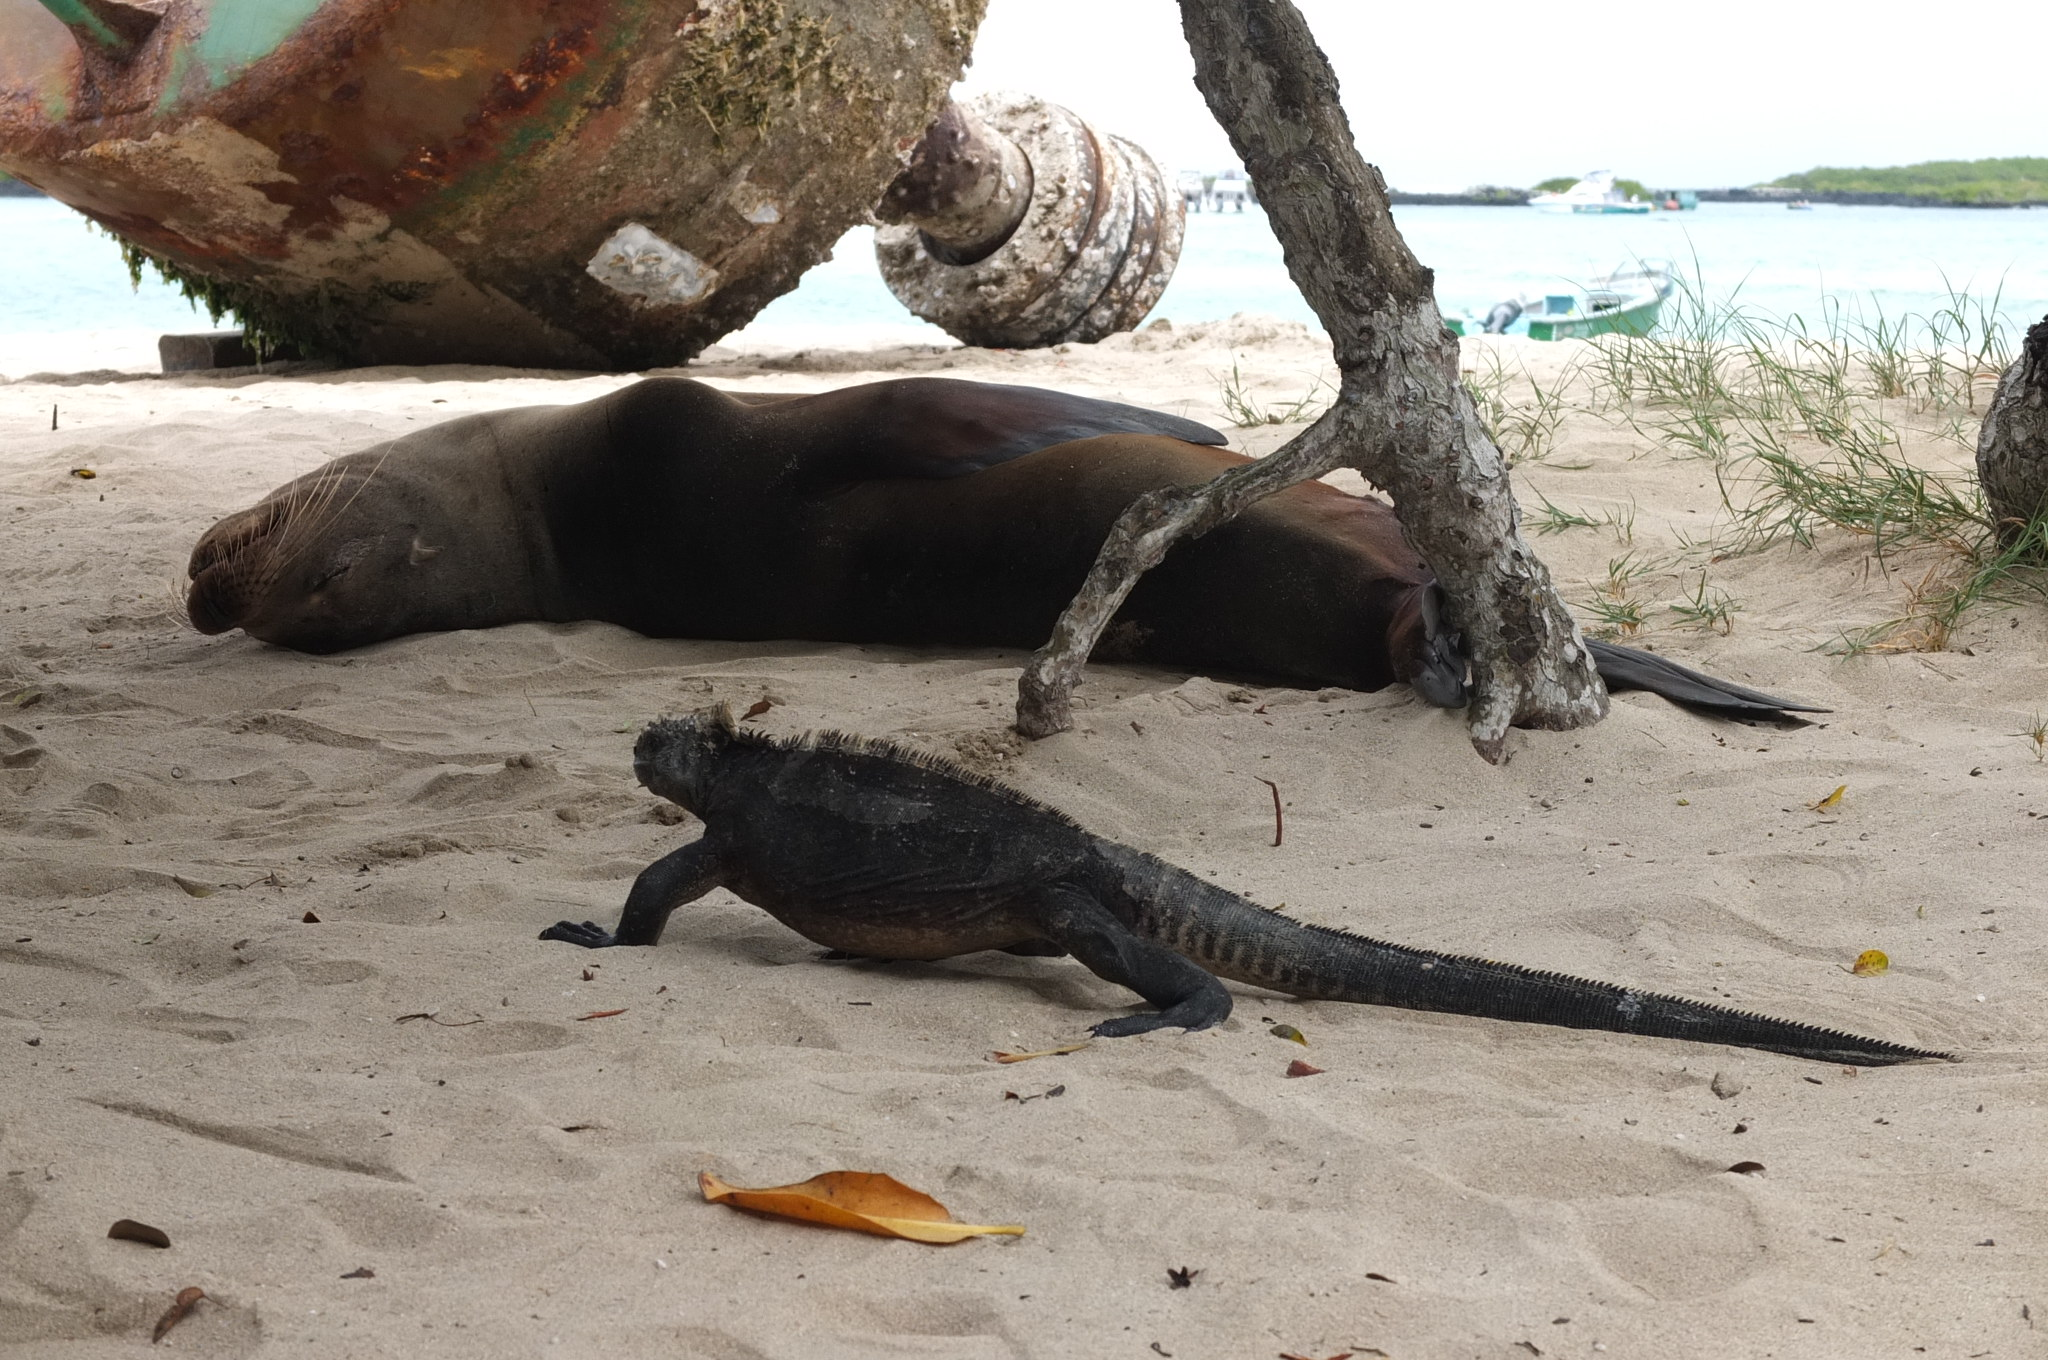 Sealion and Iguana together?